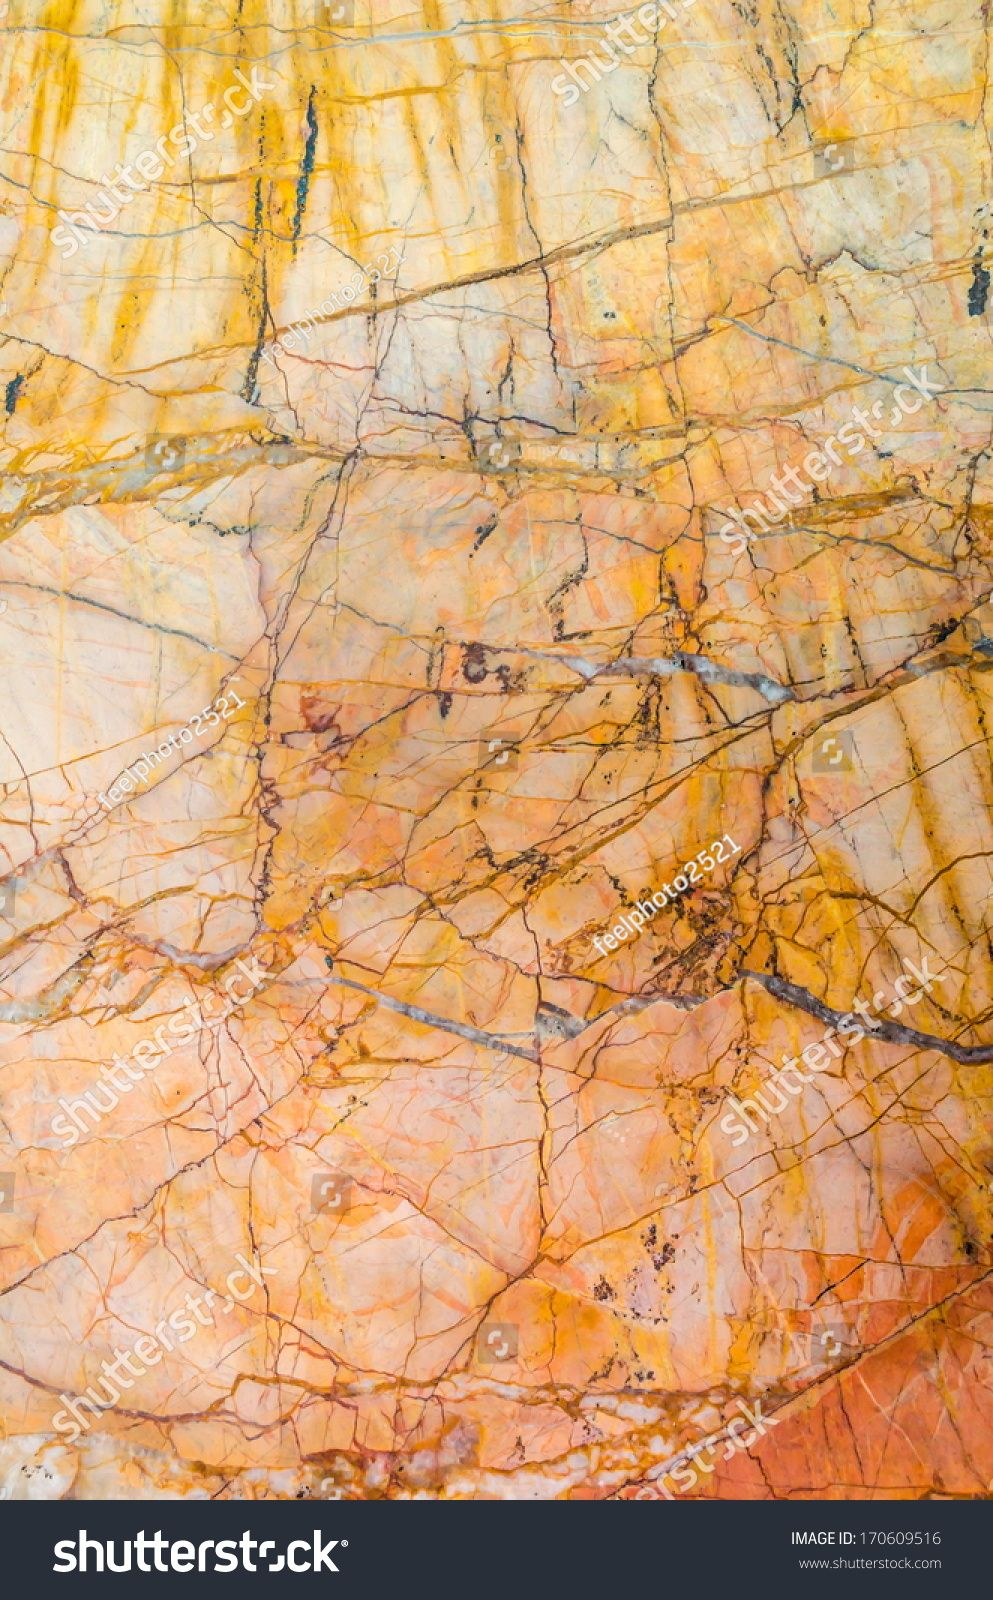 marble texture background High resolution scan